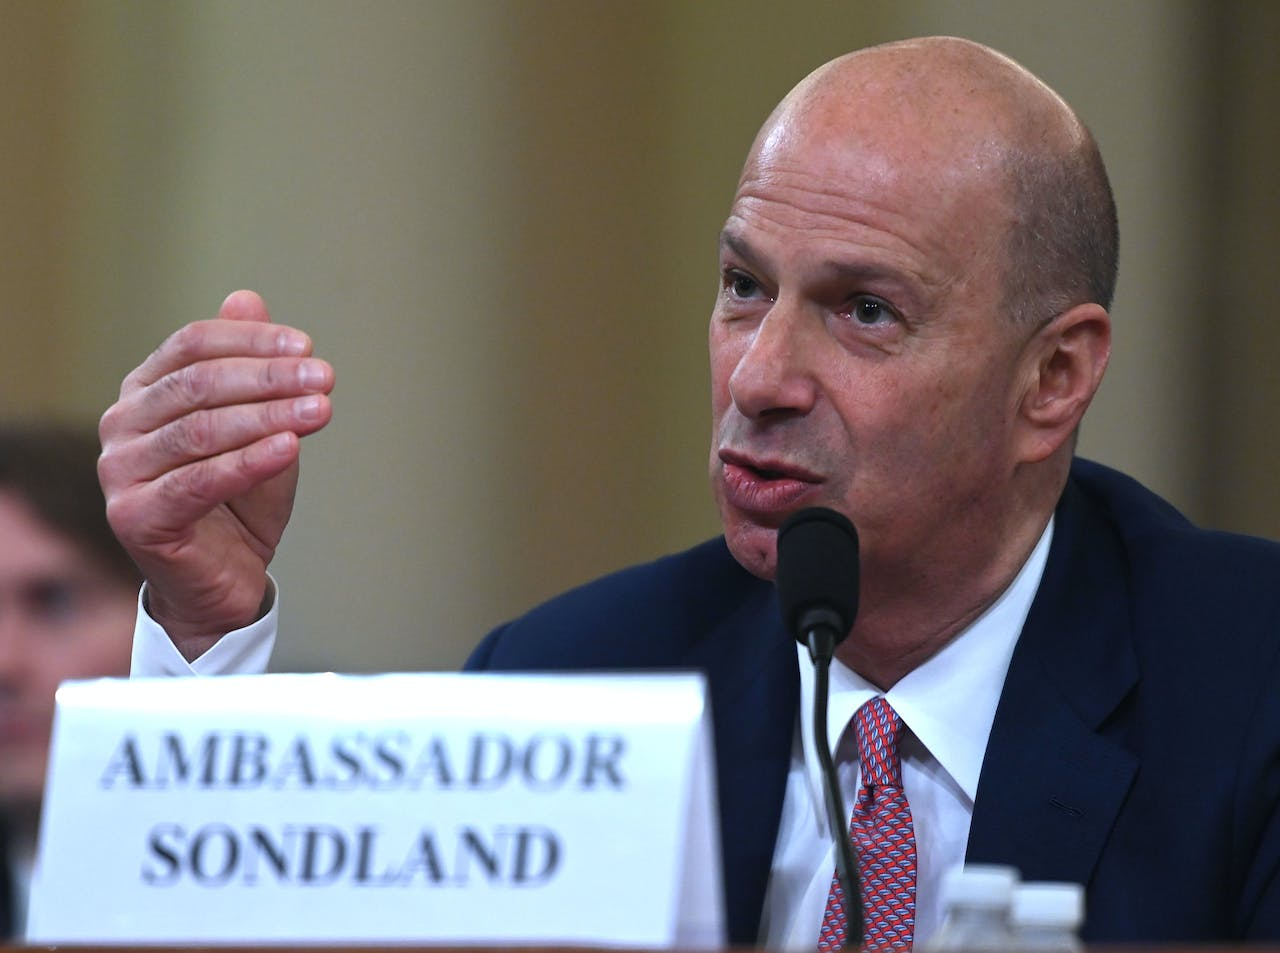 "2019-11-20 18:25:31 US Ambassador to the European Union Gordon Sondland testifies during the House Intelligence Committee hearing as part of the impeachment inquiry into US President Donald Trump on Capitol Hill in Washington,DC on November 20, 2019. The US ambassador to the European Union told an impeachment hearing Wednesday that he was following the orders of President Donald Trump in seeking a ""quid pro quo"" from Ukraine. Gordon Sondland -- whose appearance before Congress is being watched especially closely as he was a Trump ally -- said he believed the president was pressing Ukraine to investigate his potential 2020 rival Joe Biden. Andrew CABALLERO-REYNOLDS / AFP"